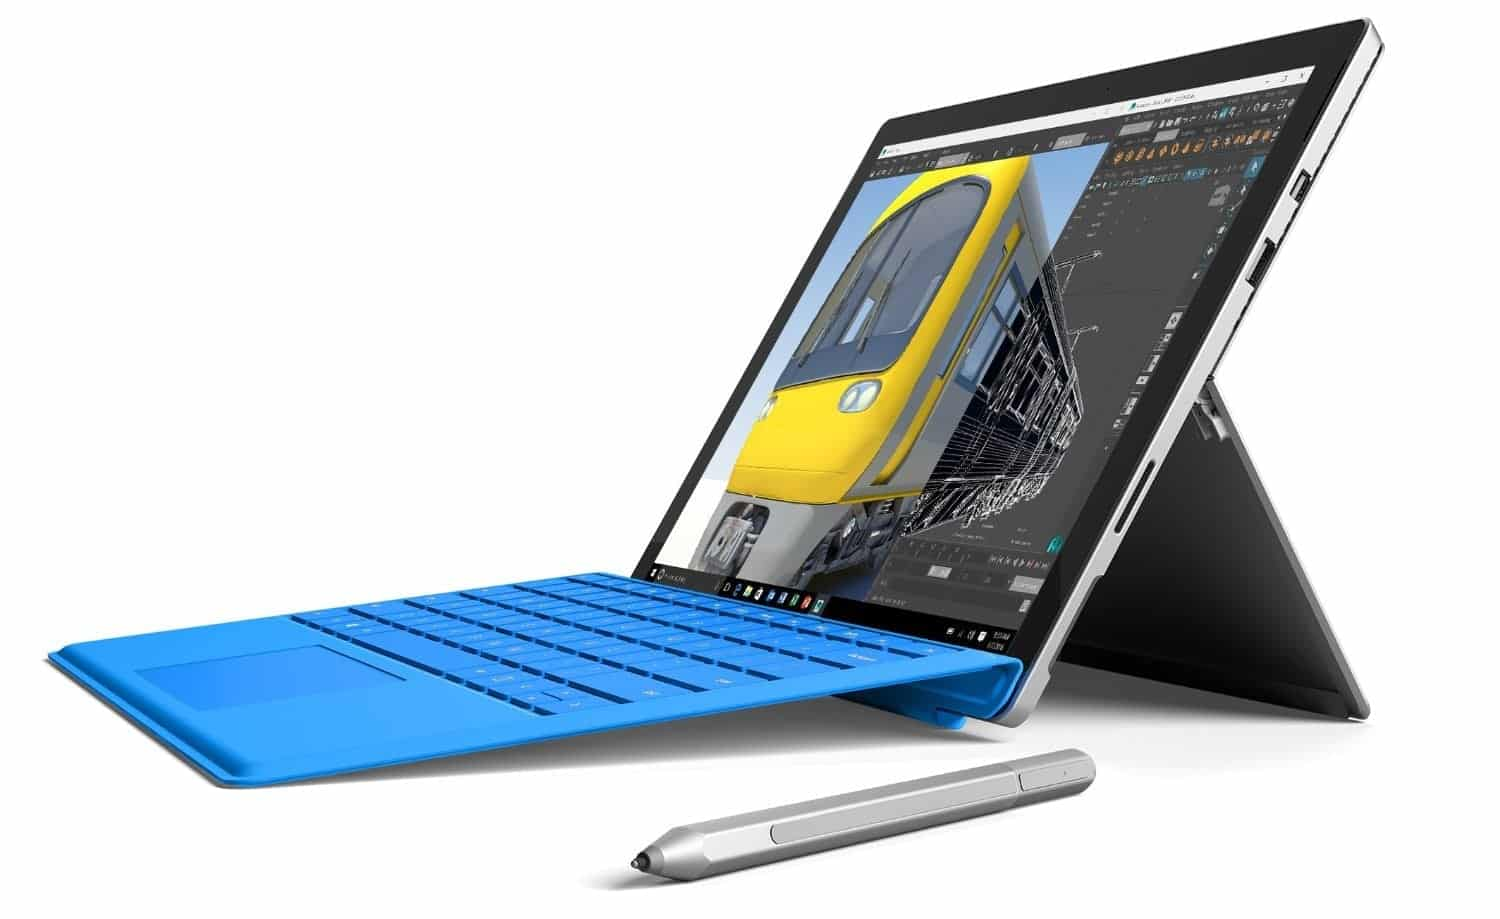 Tablets with USB Ports Microsoft Surface Pro 4